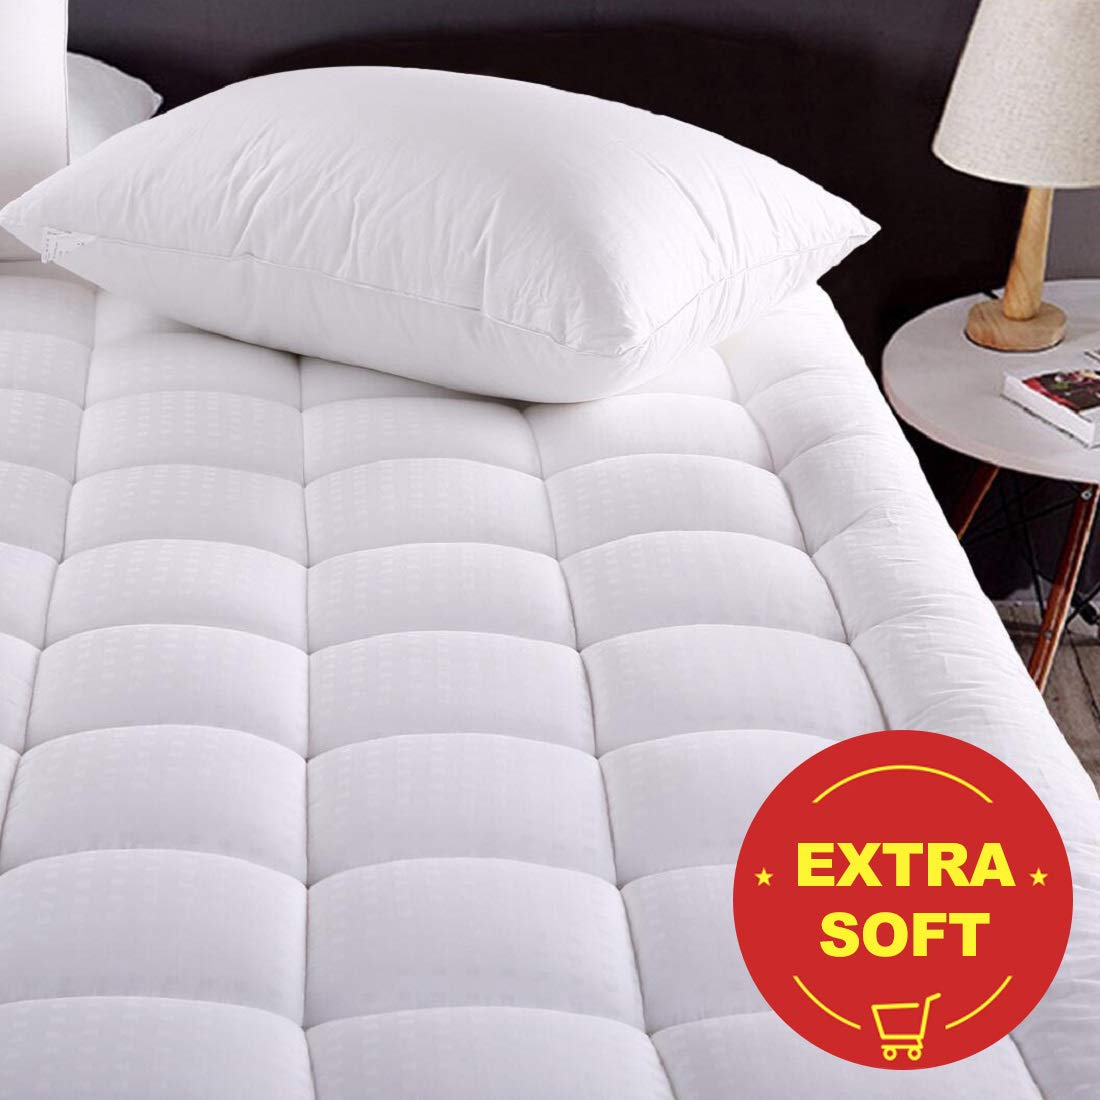 MEROUS Full Size Cotton Mattress Pad - Pillow Top Quilted Mattress Topper,Fitted 8-21 Inch Deep Pocket Mattress Pad Cover